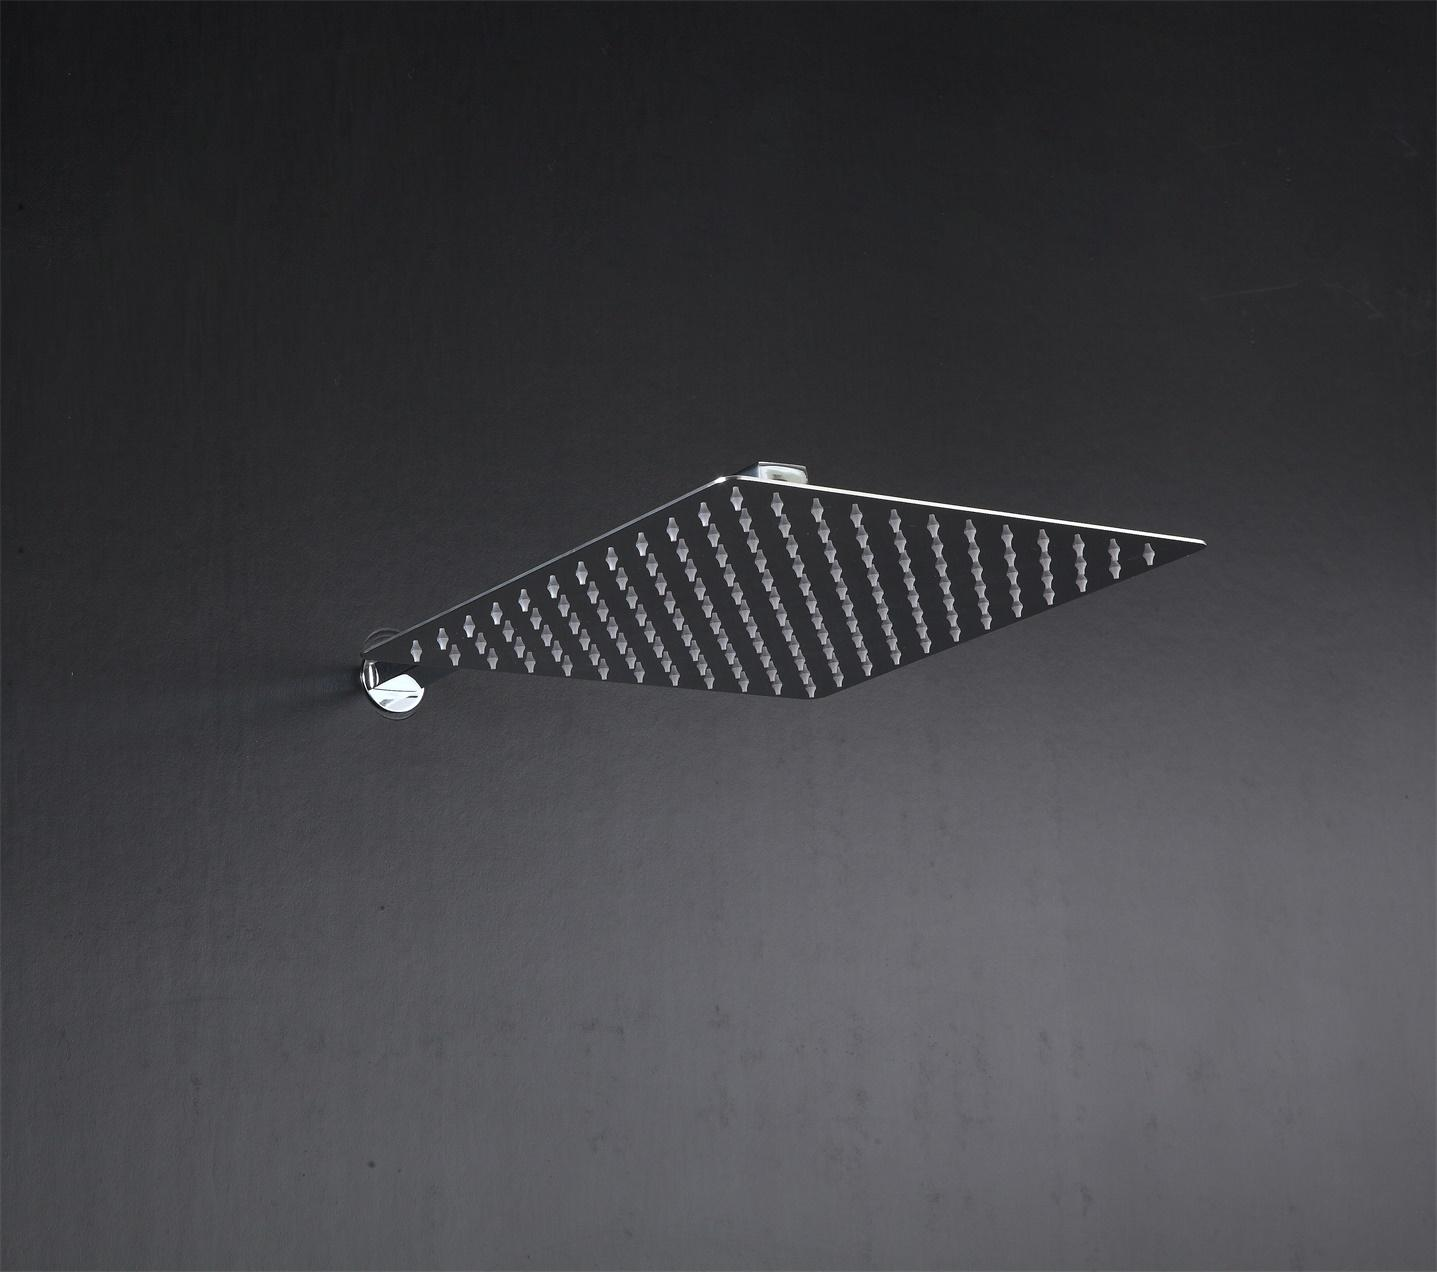 LED shower set square head 12 to 24 inches SUS304 2